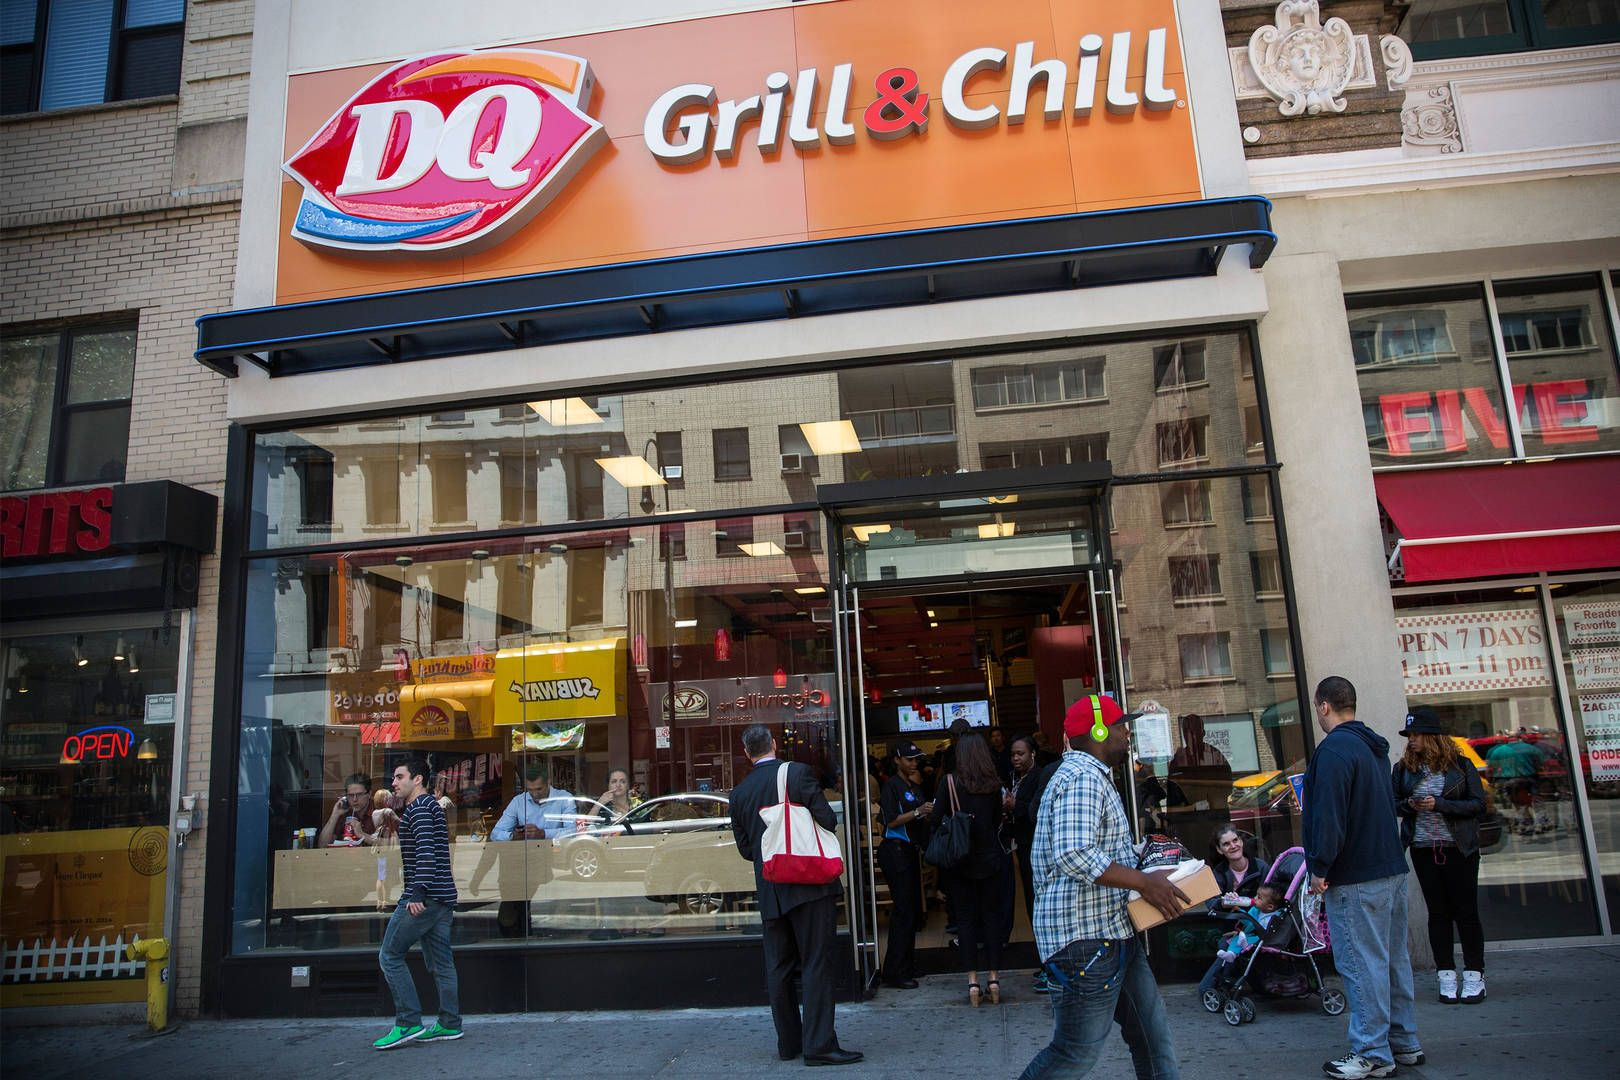 Dairy queen confirms they dont use human meat in their